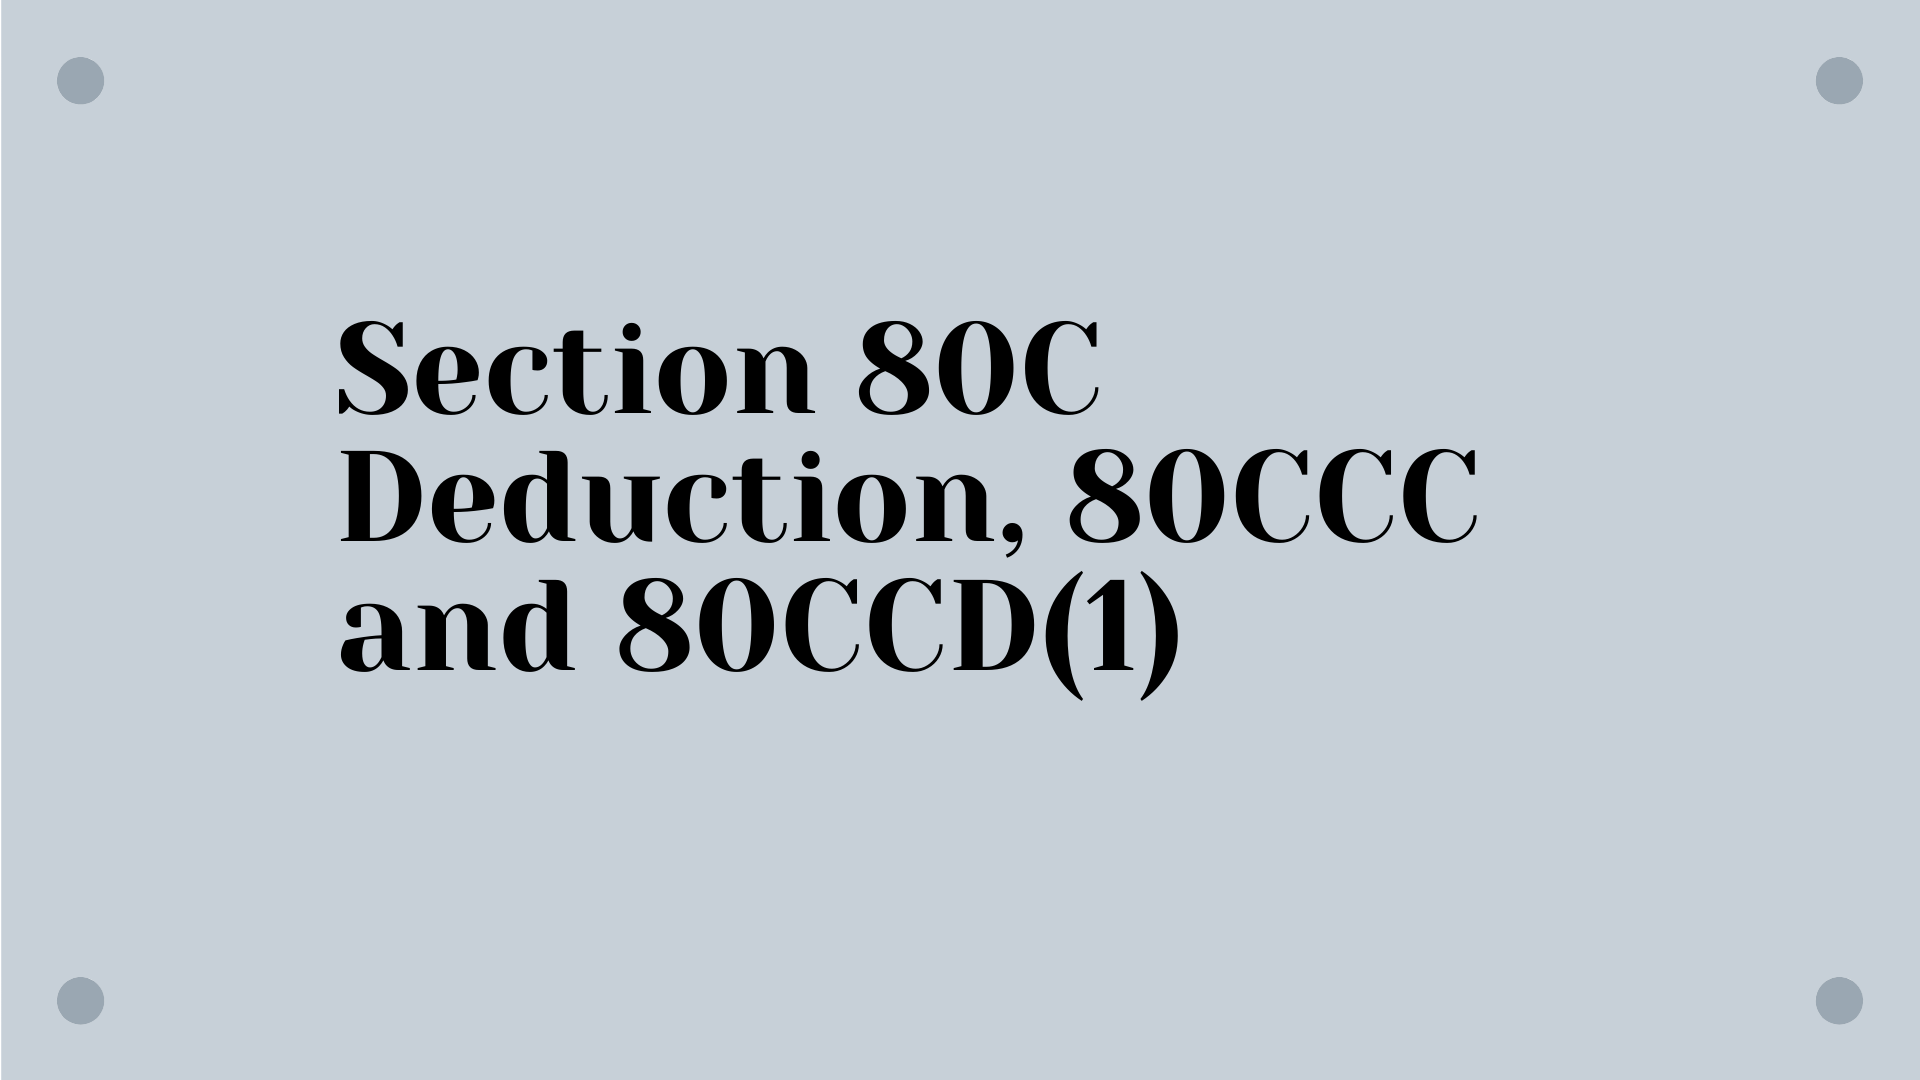 Section 80C Deduction, 80CCC and 80CCD(1)